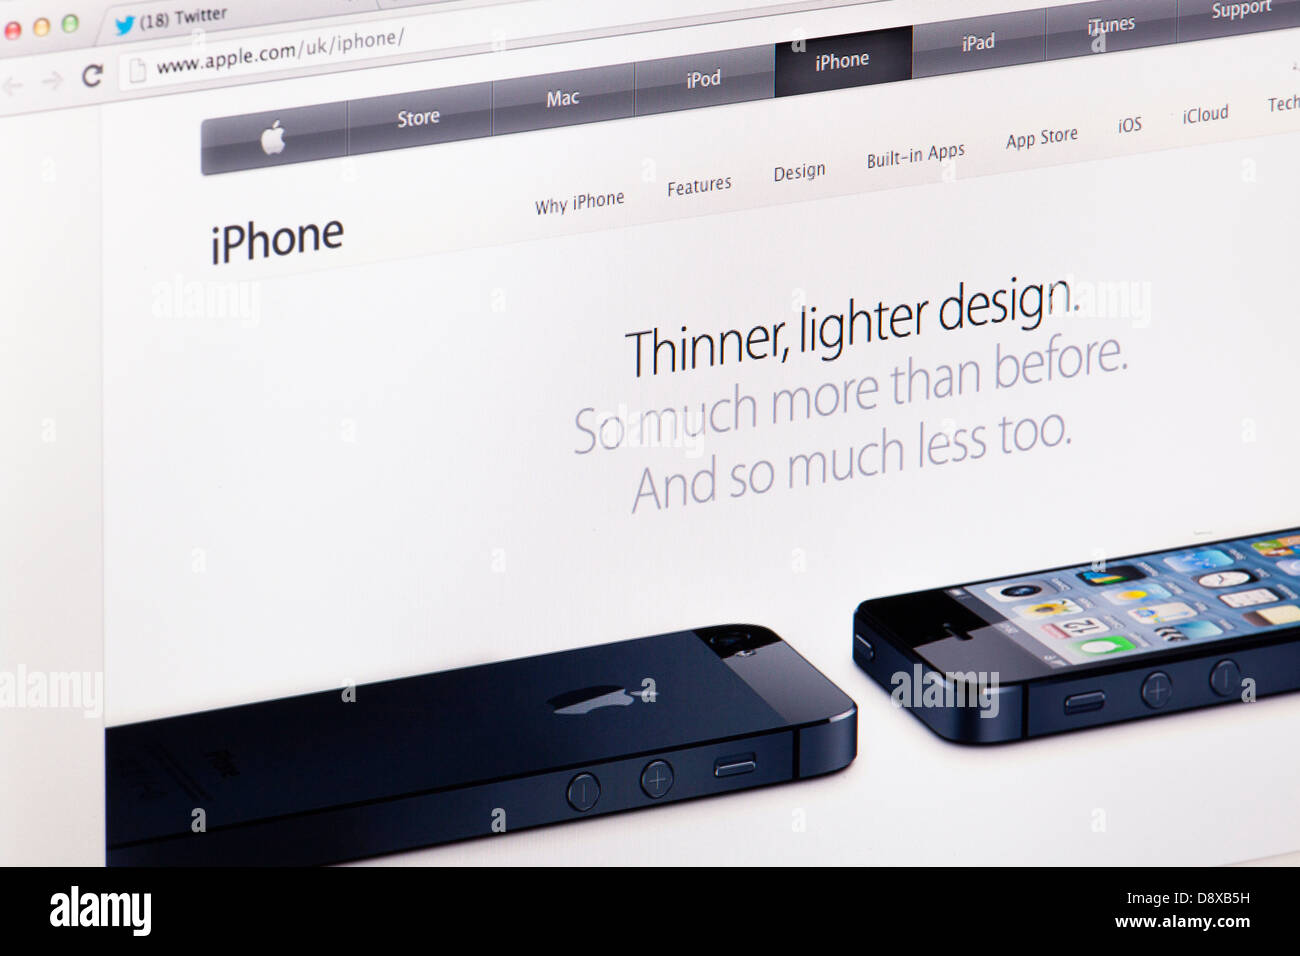 Apple iPhone 5 Store Buy Online Website or web page on a laptop